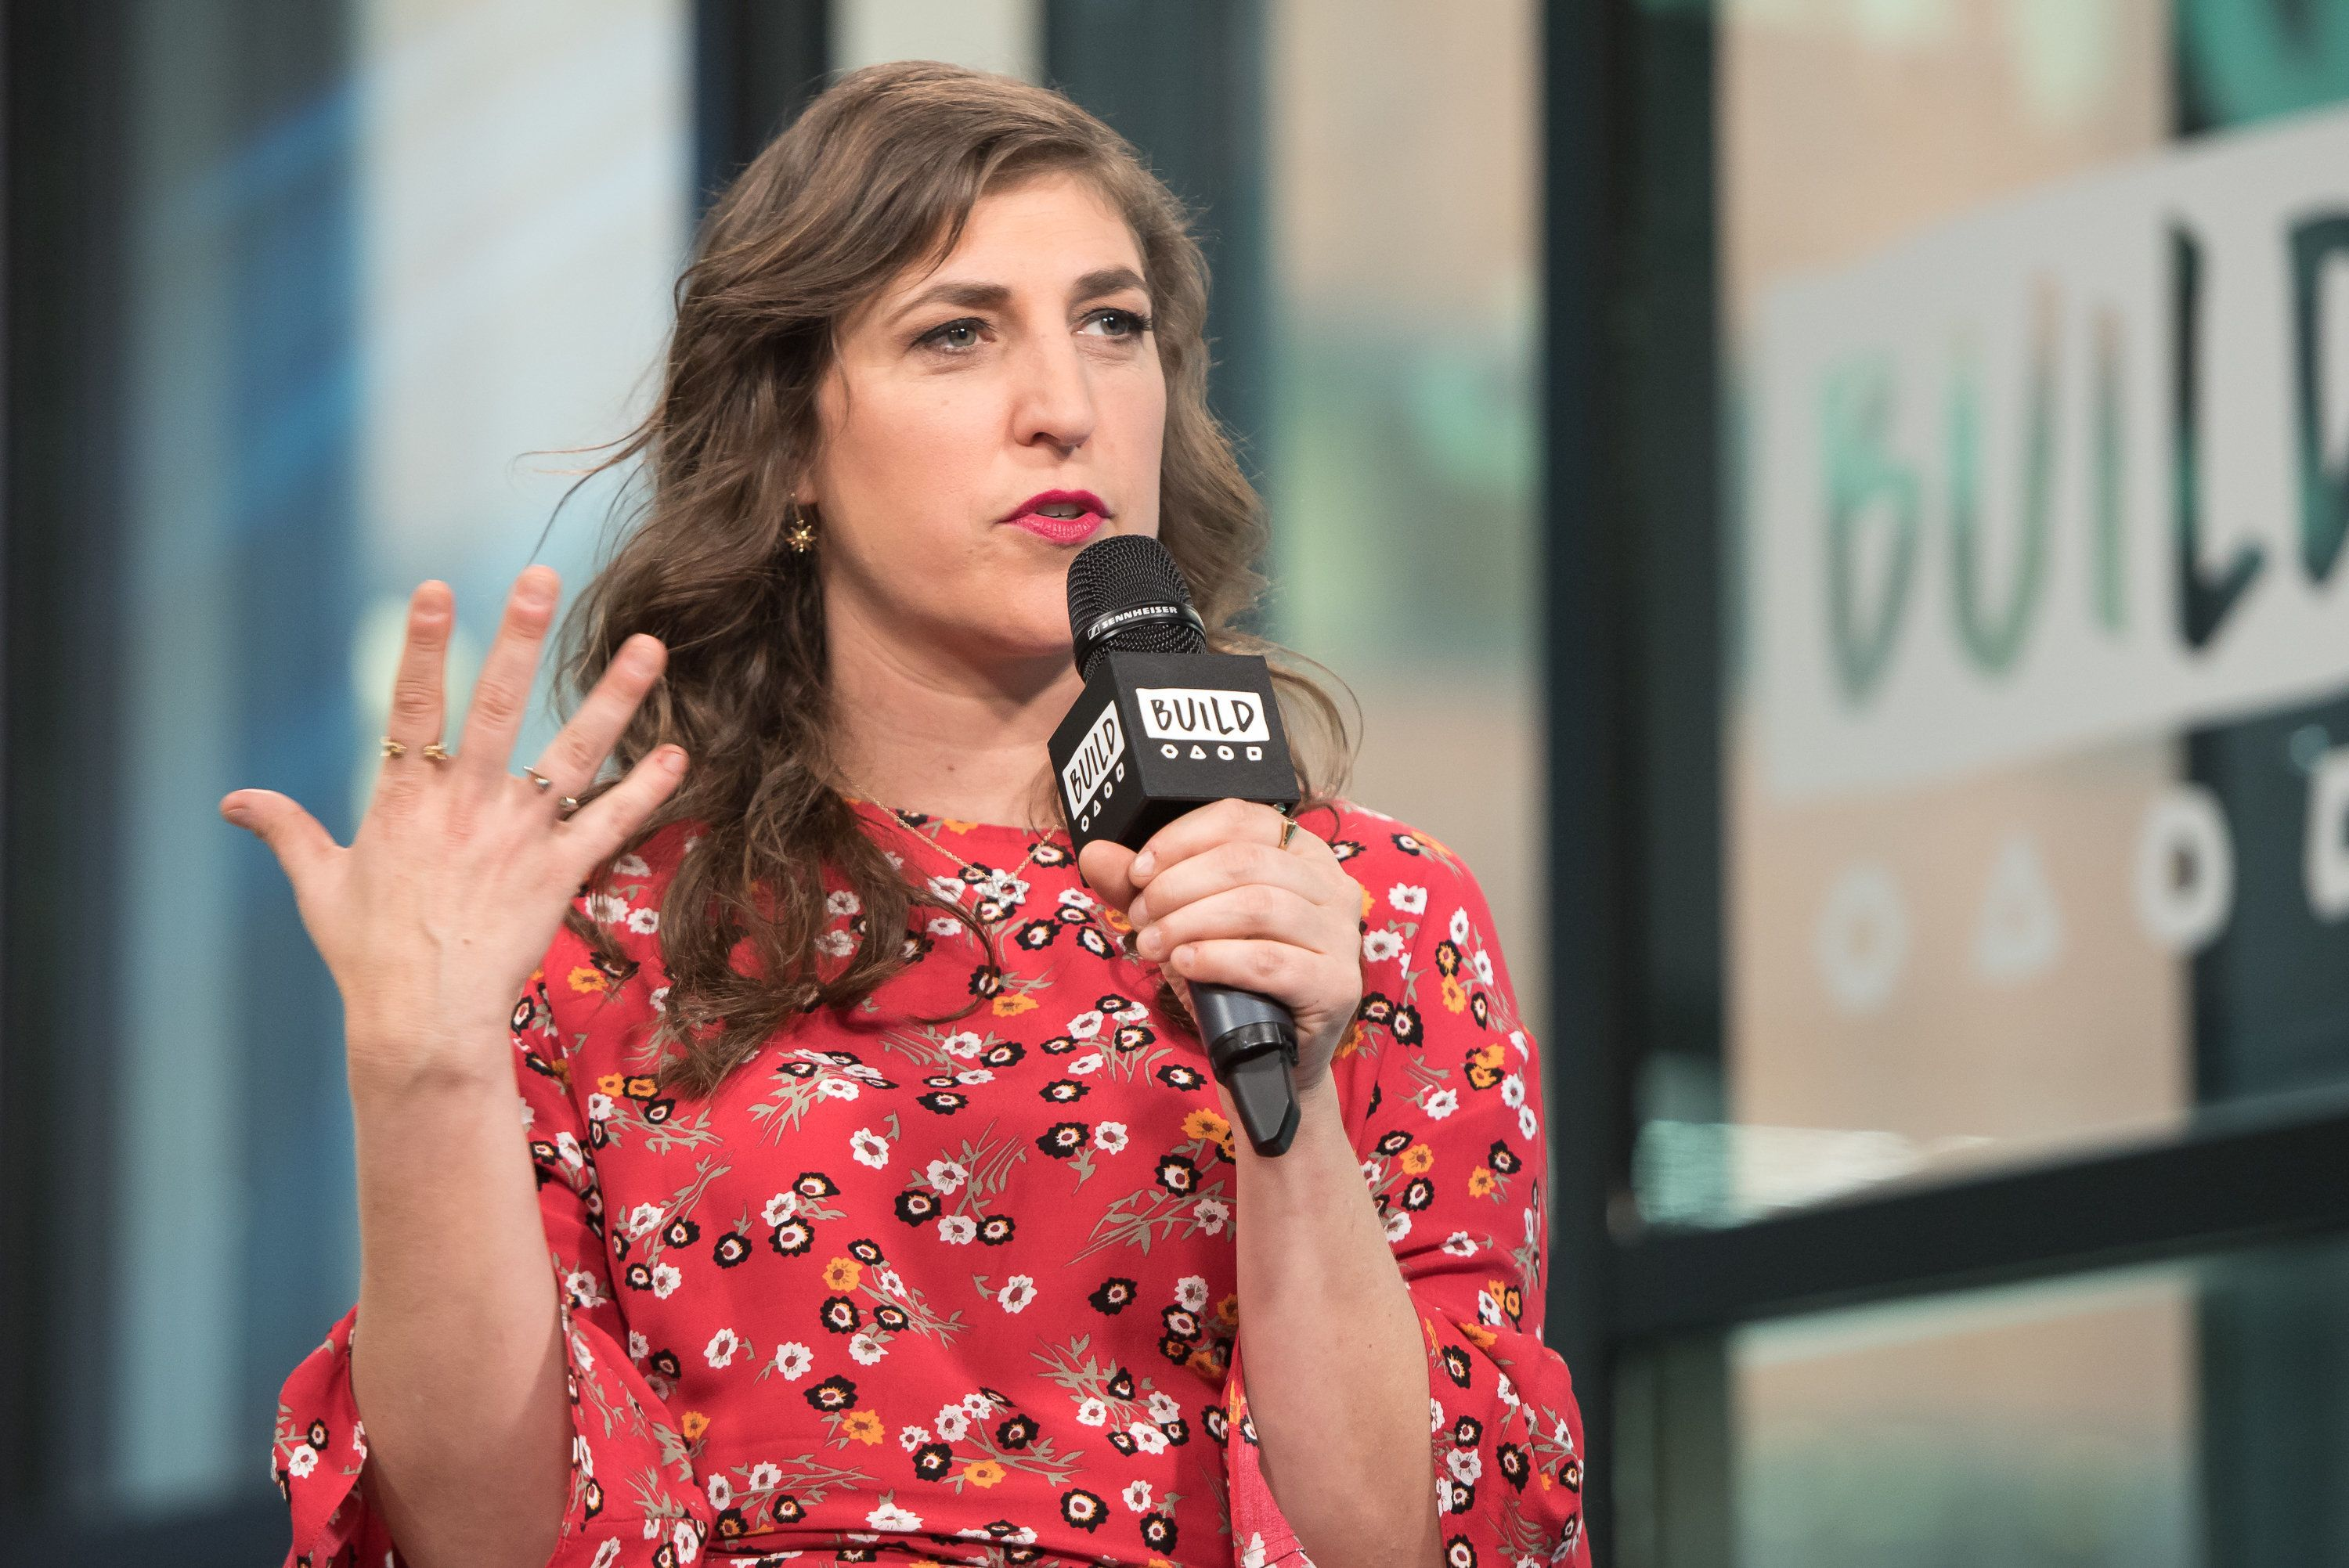 NEW YORK, NY - MAY 09:  Mayim Bialik visits Build Studio to discuss her new book 'Girling Up: How to Be Strong, Smart and Spectacular' at Build Studio on May 9, 2017 in New York City.  (Photo by Mike Pont/WireImage)